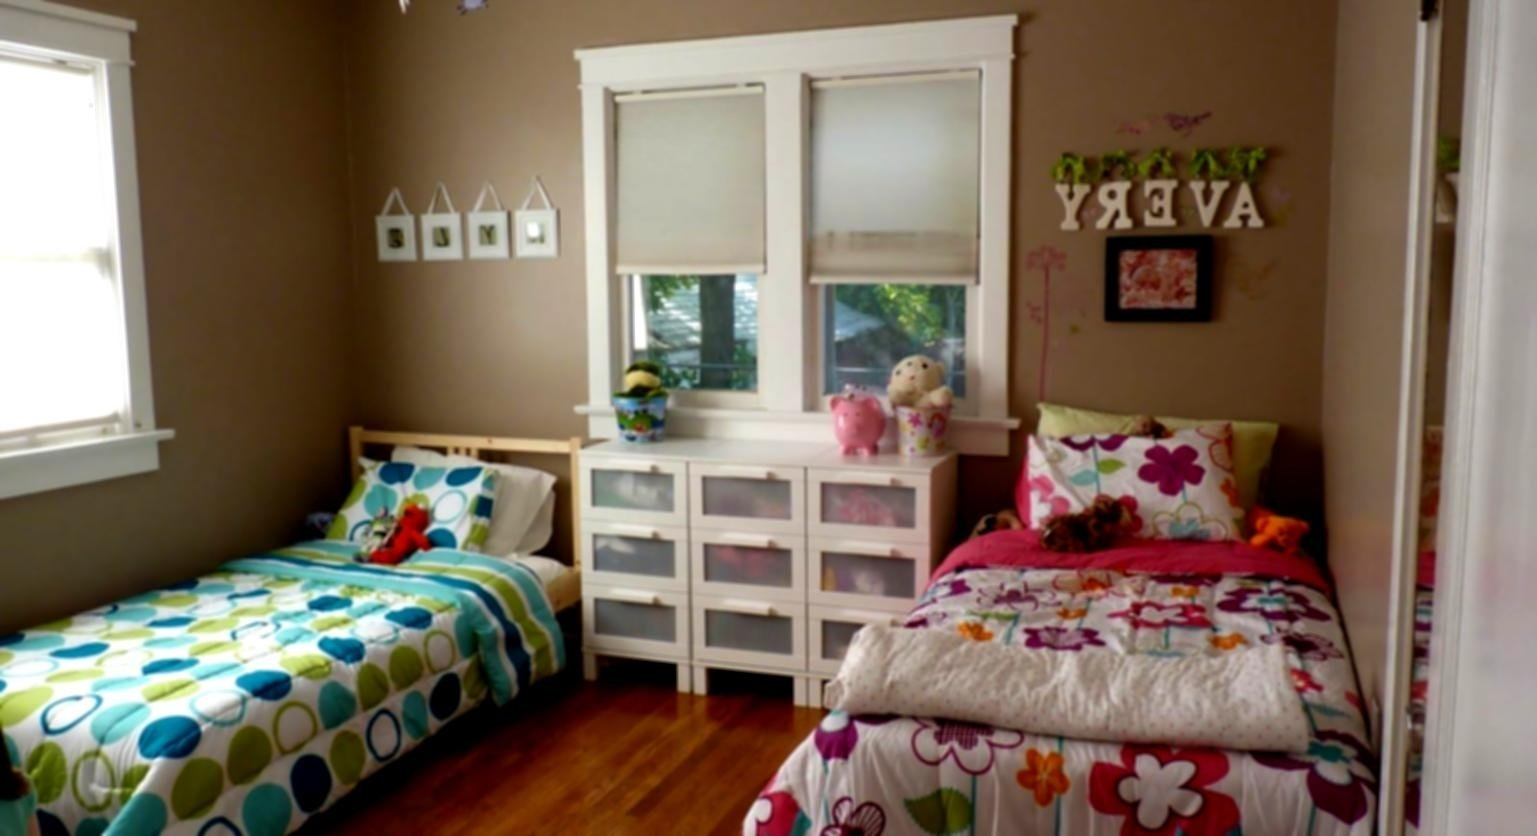 10 Gorgeous Girl And Boy Room Ideas pioneering boy and girl room ideas bedroom design kids boys for 2020